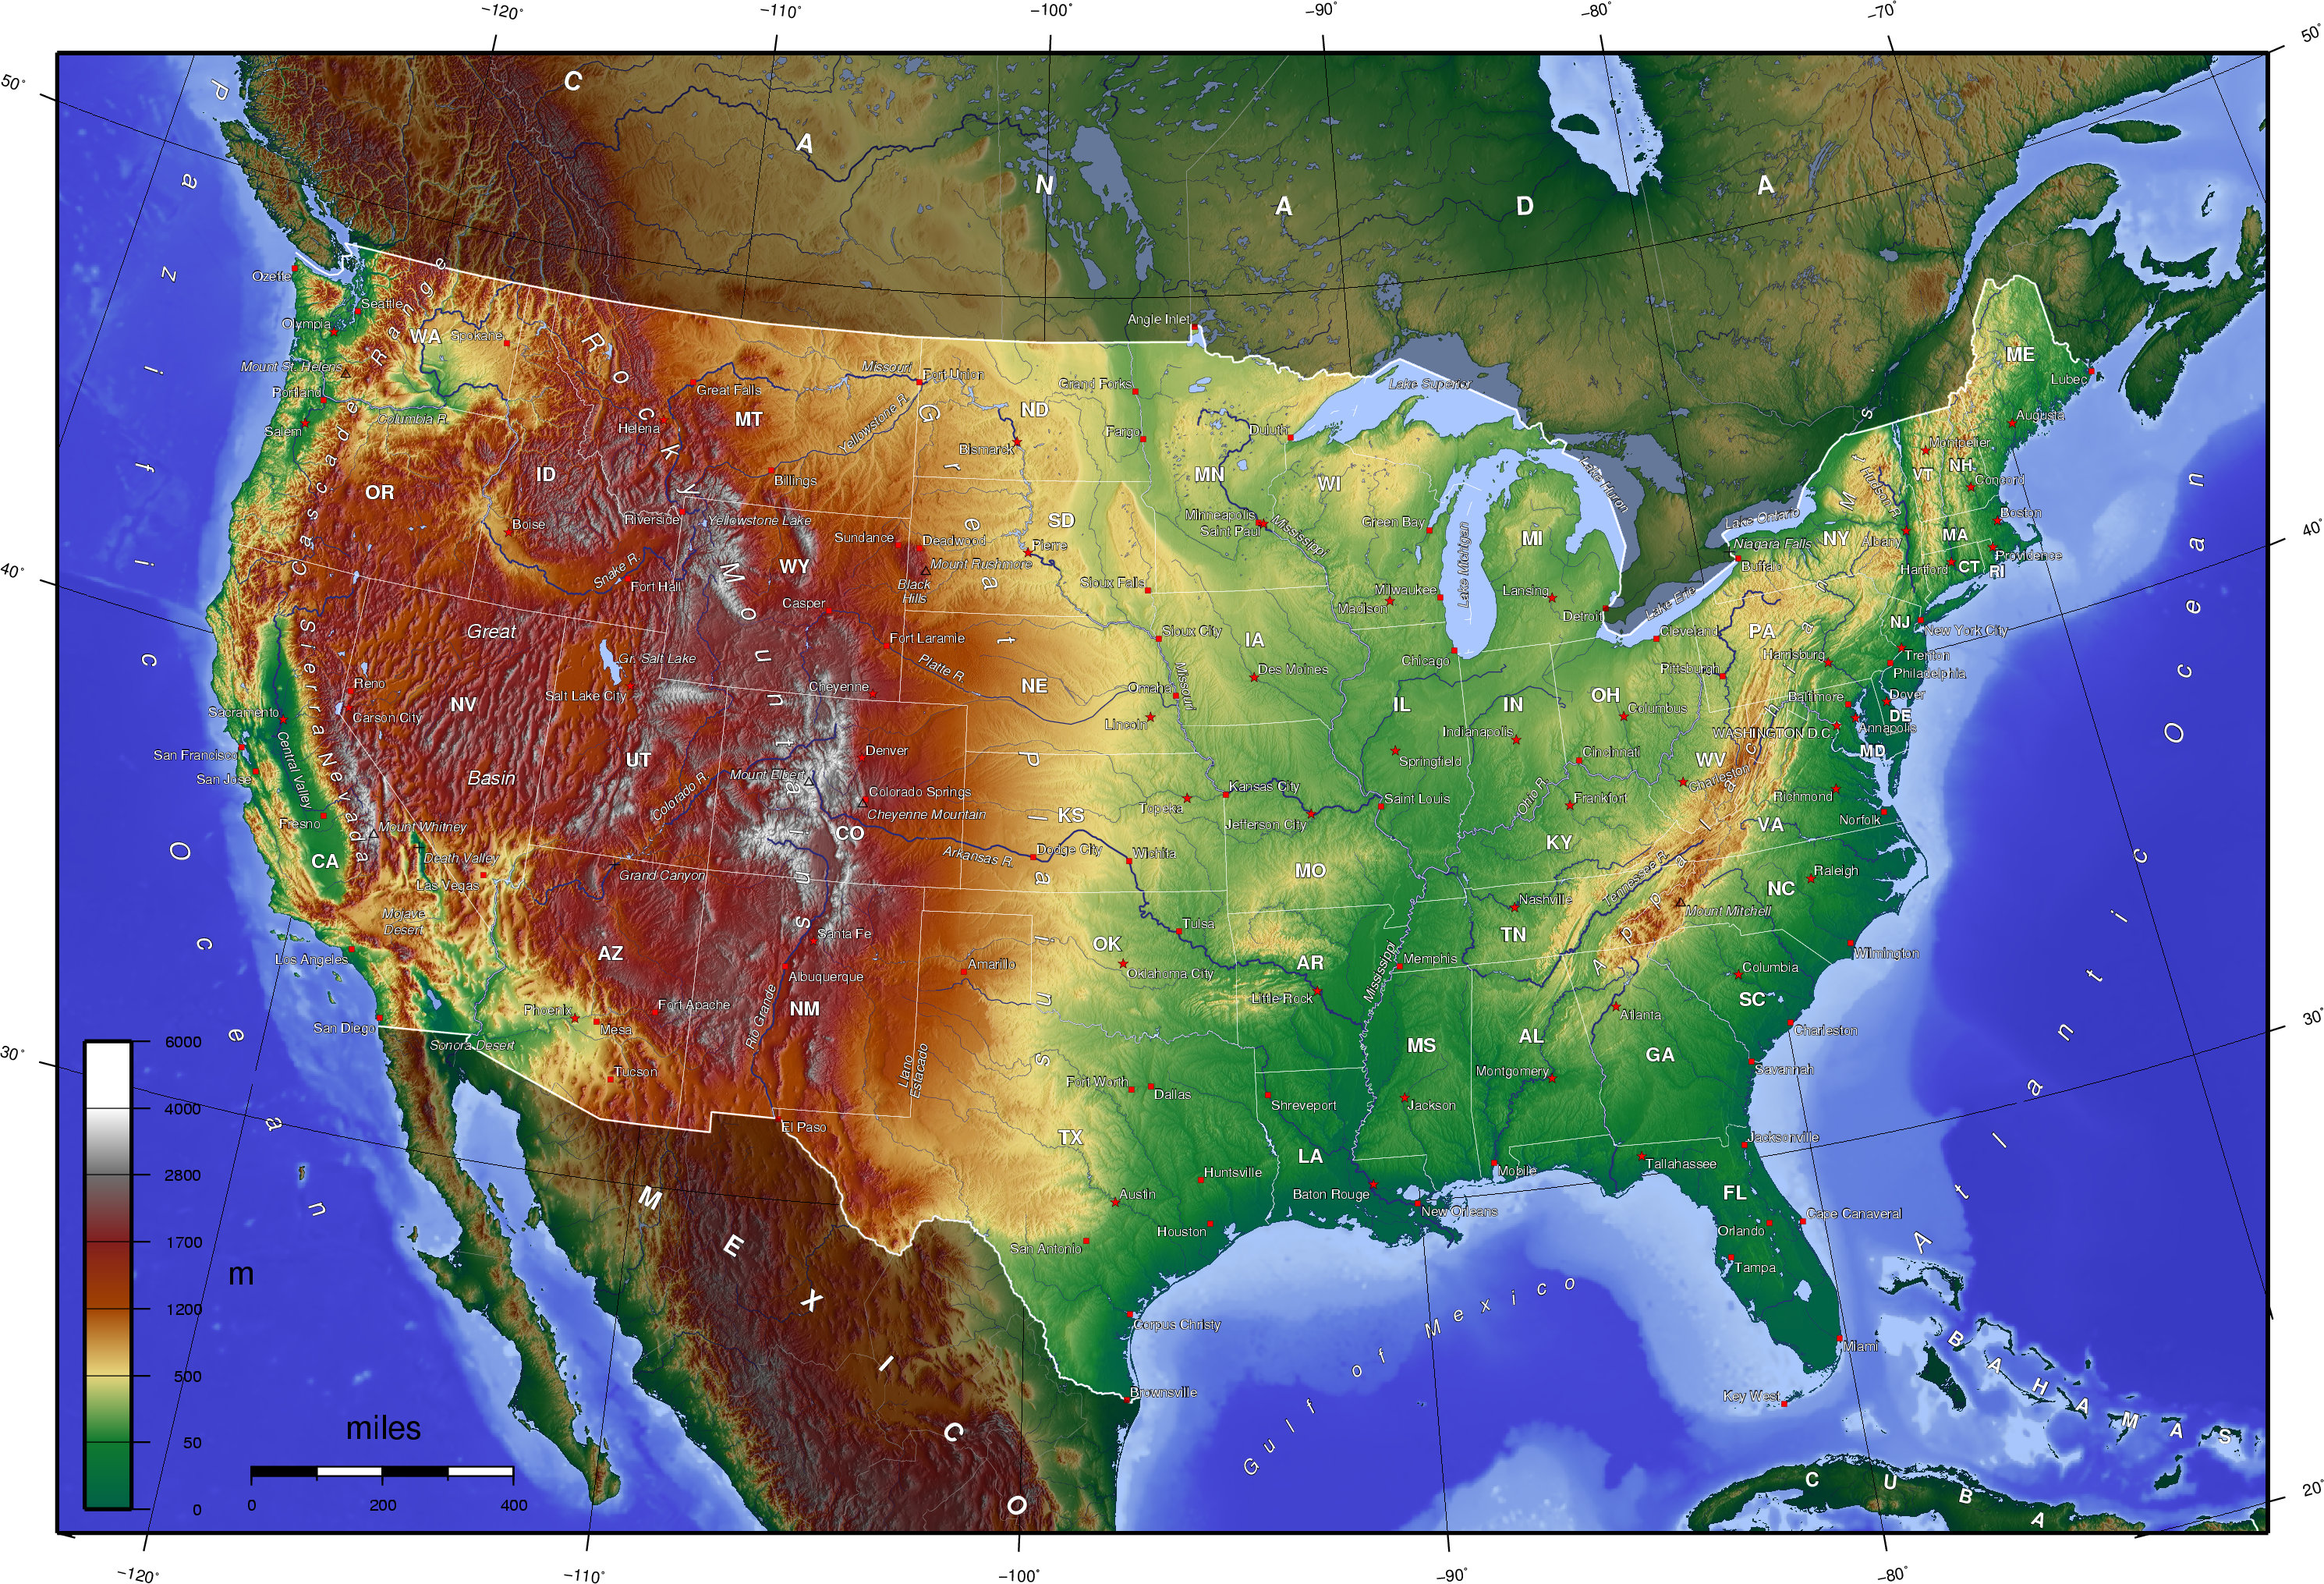 Seawall A Trillion Dollars Doesnt Sound So Bad MING - Topgraphical map of us